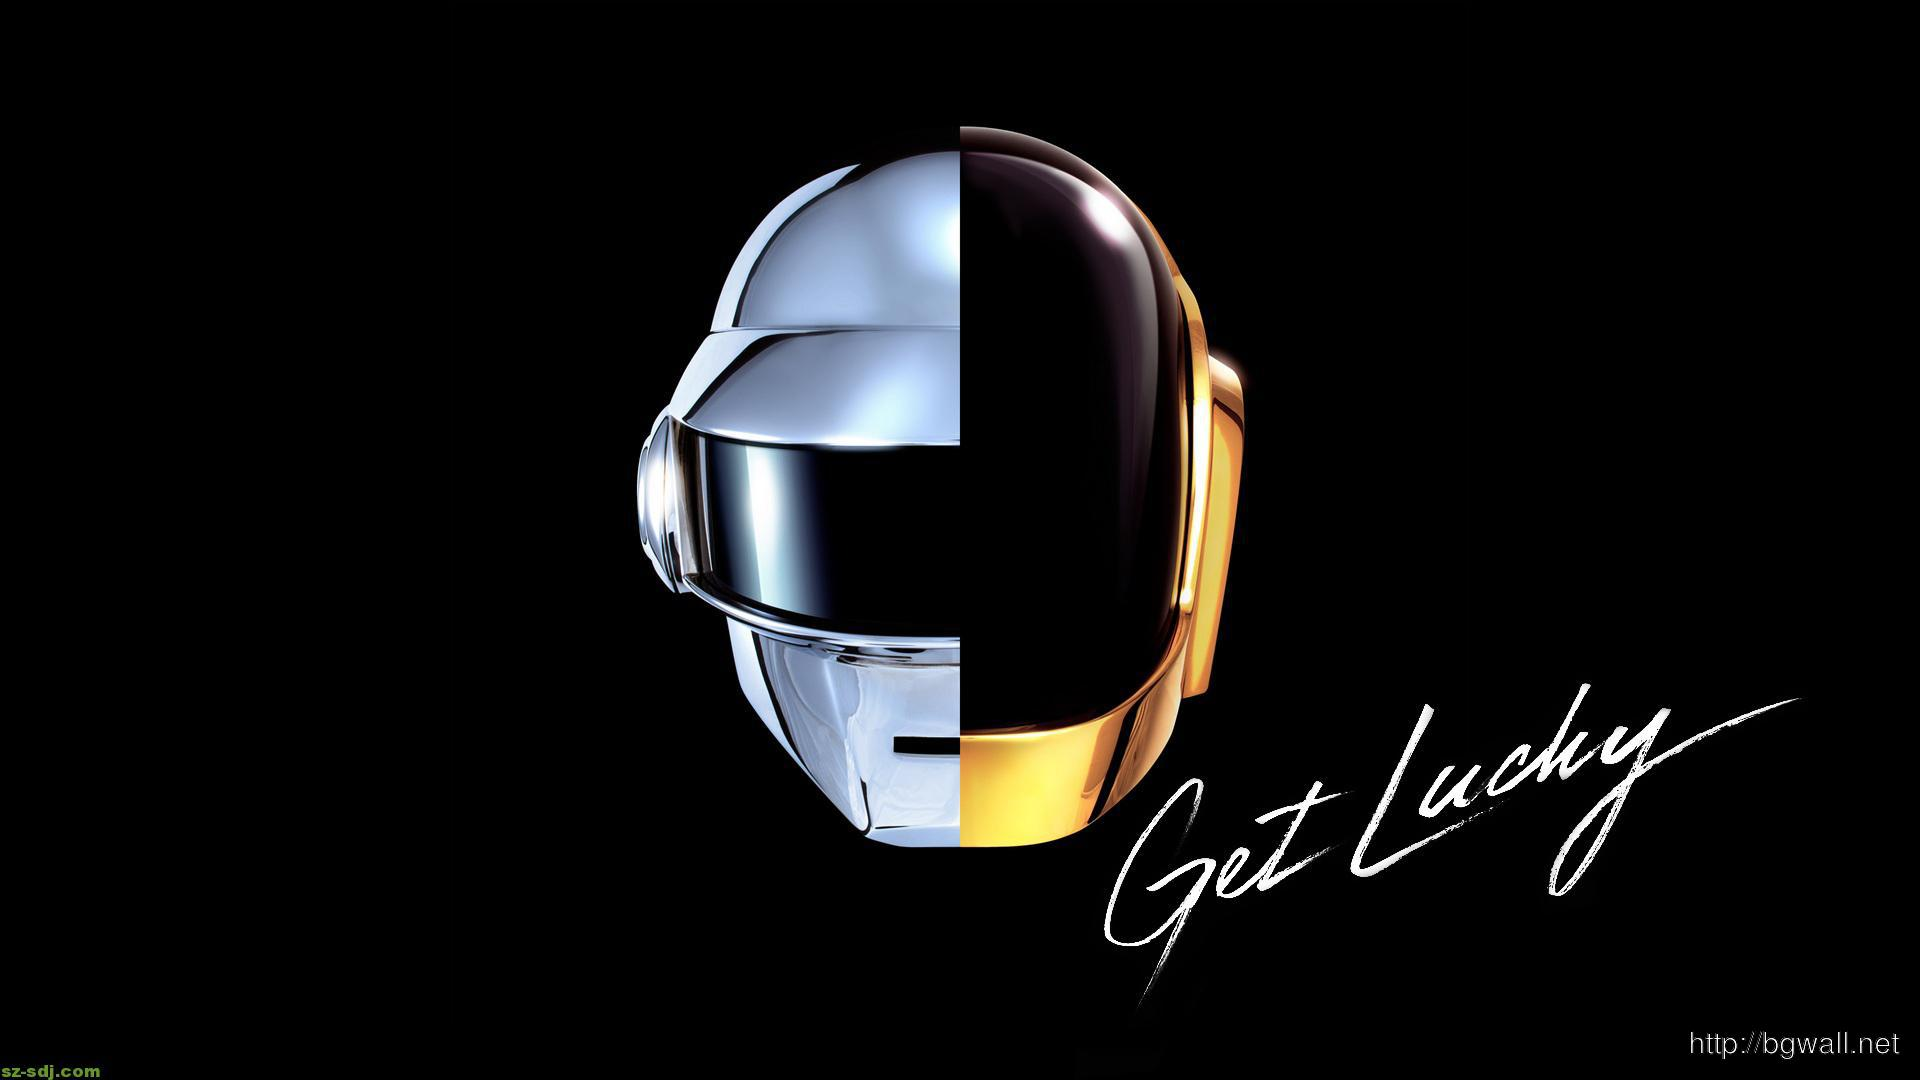 daft-punk-wallpaper-image